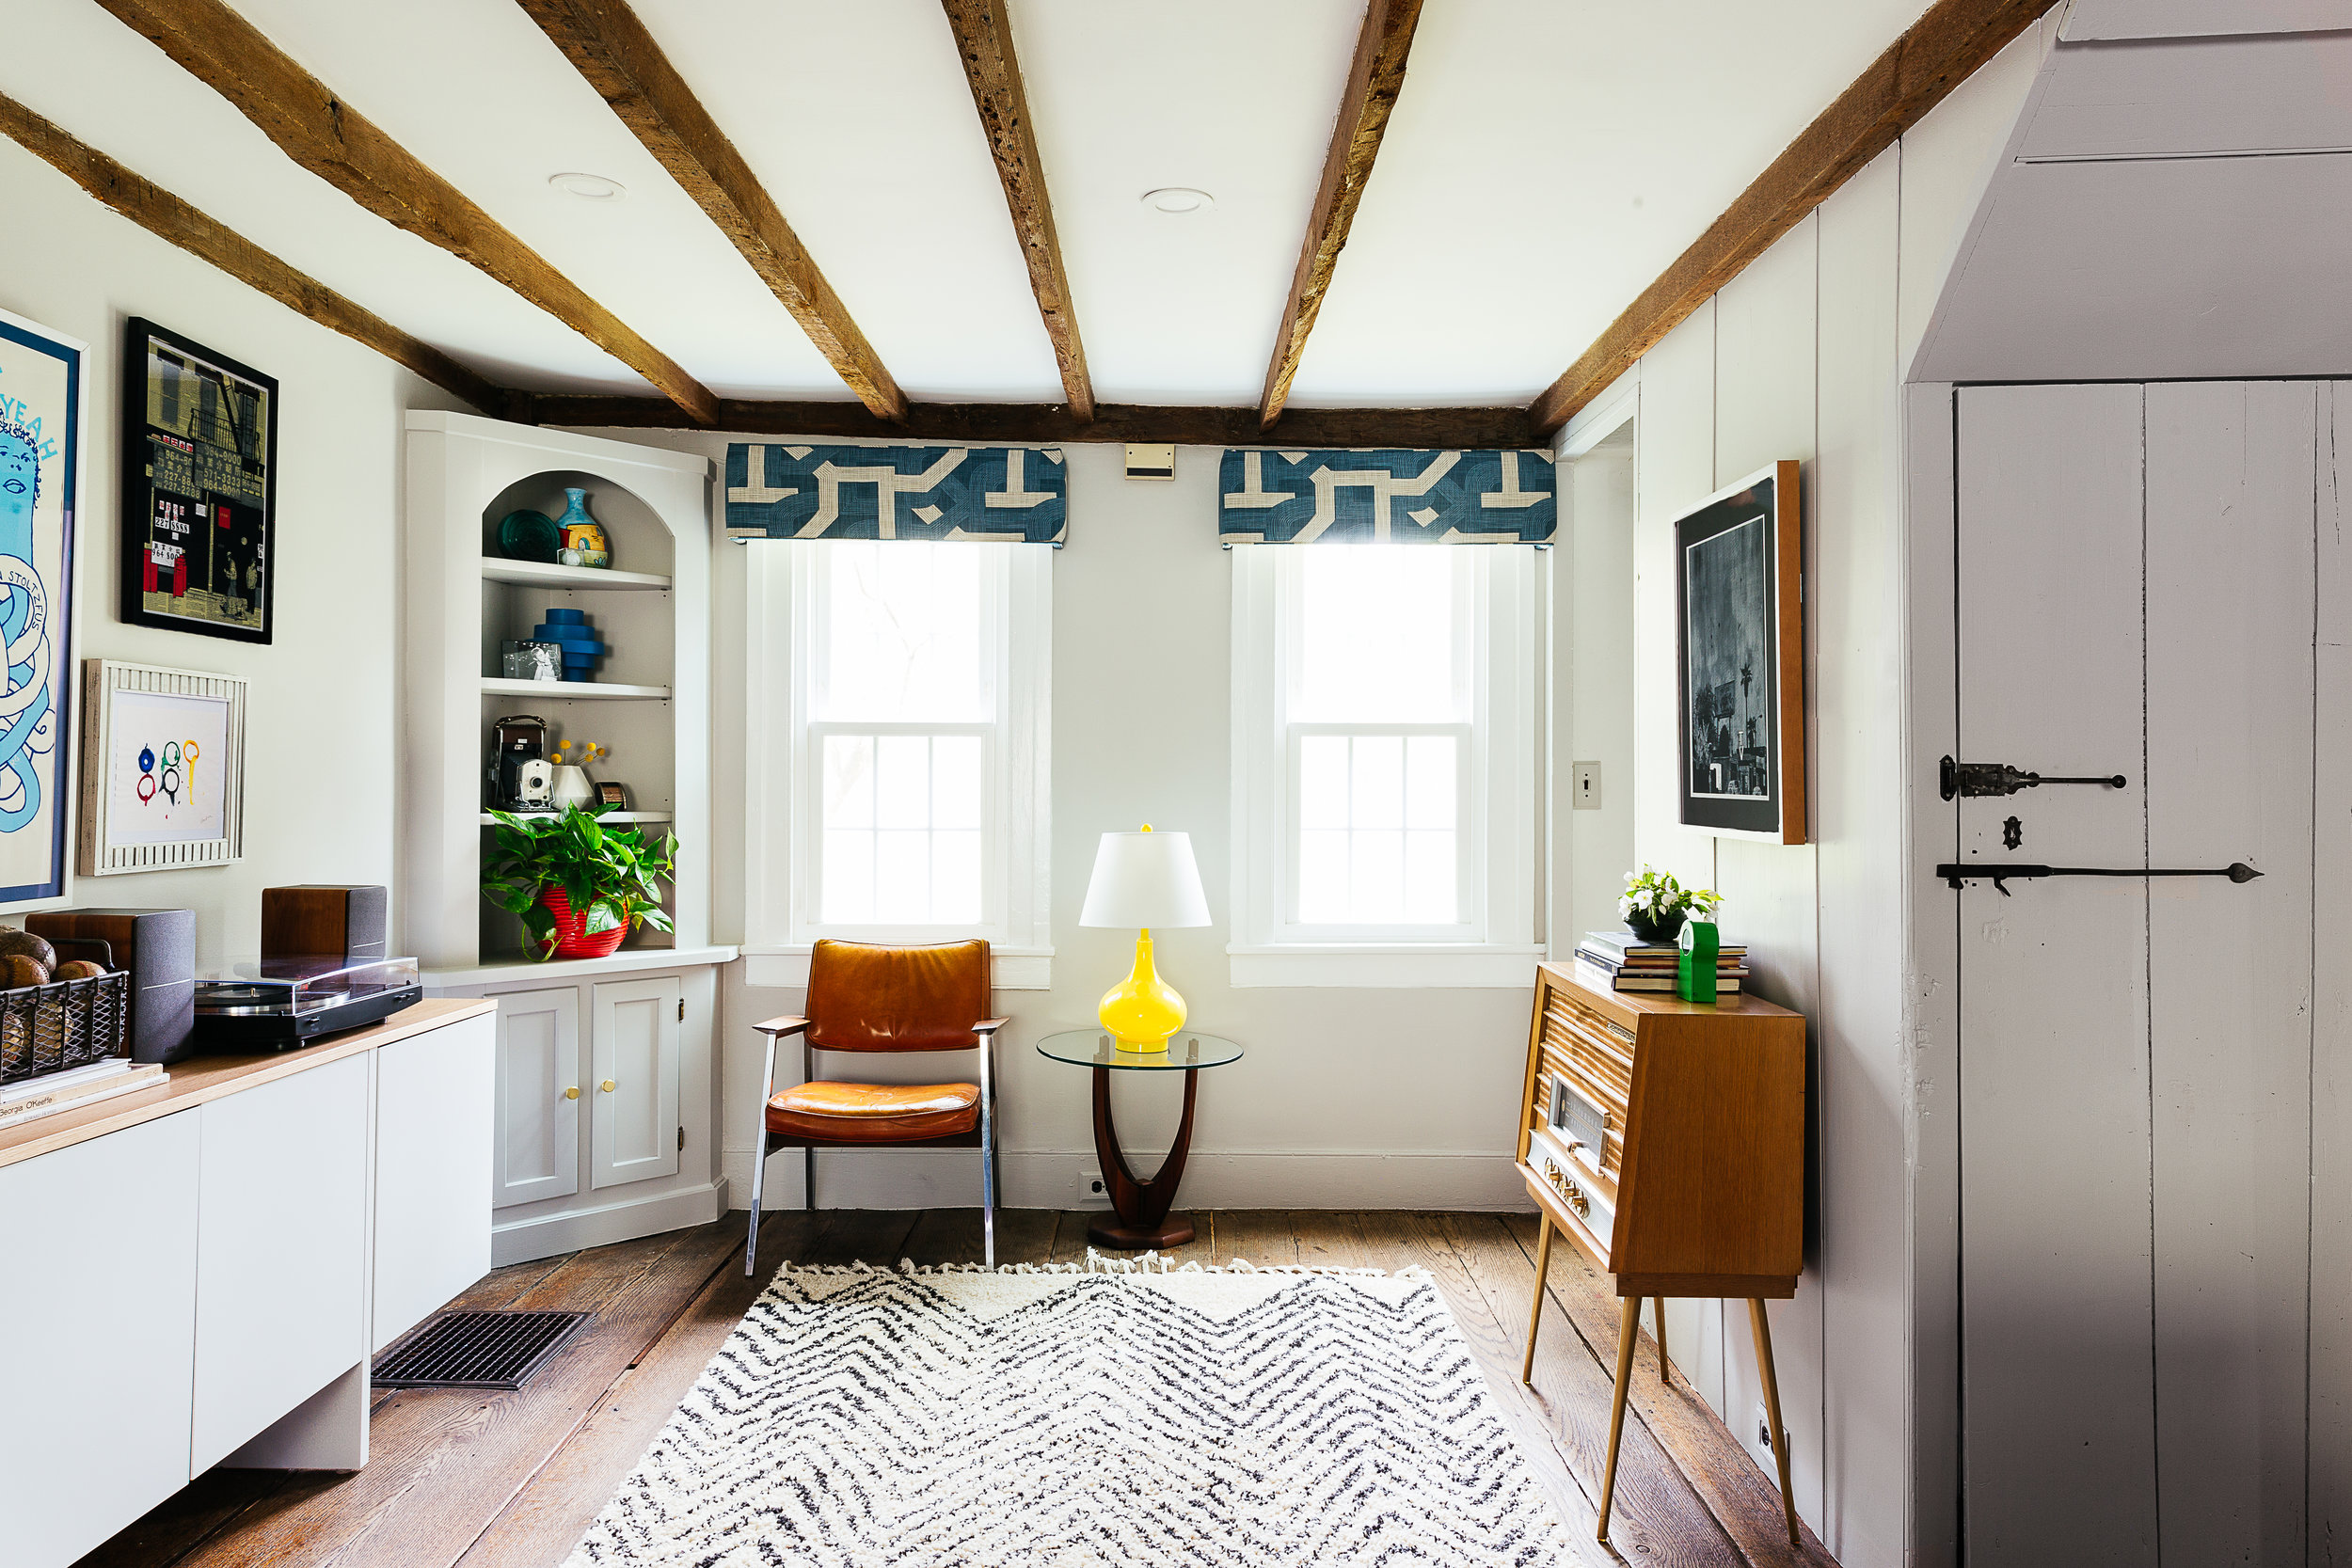 Antique farmhouse turned mid mod living room design by the rath project